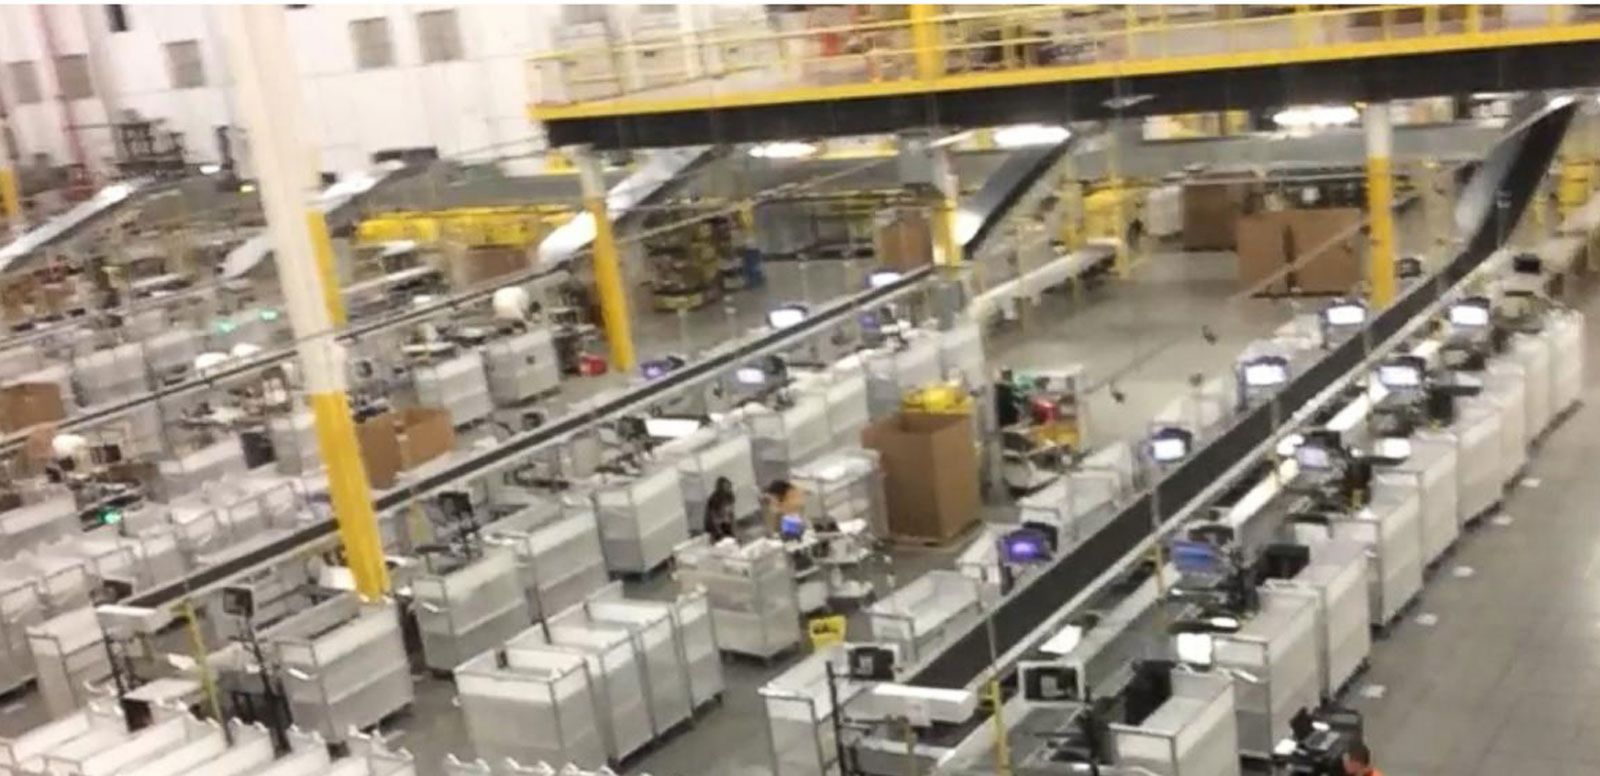 VIDEO: Cyber Monday: Inside an Amazon Fulfillment Center